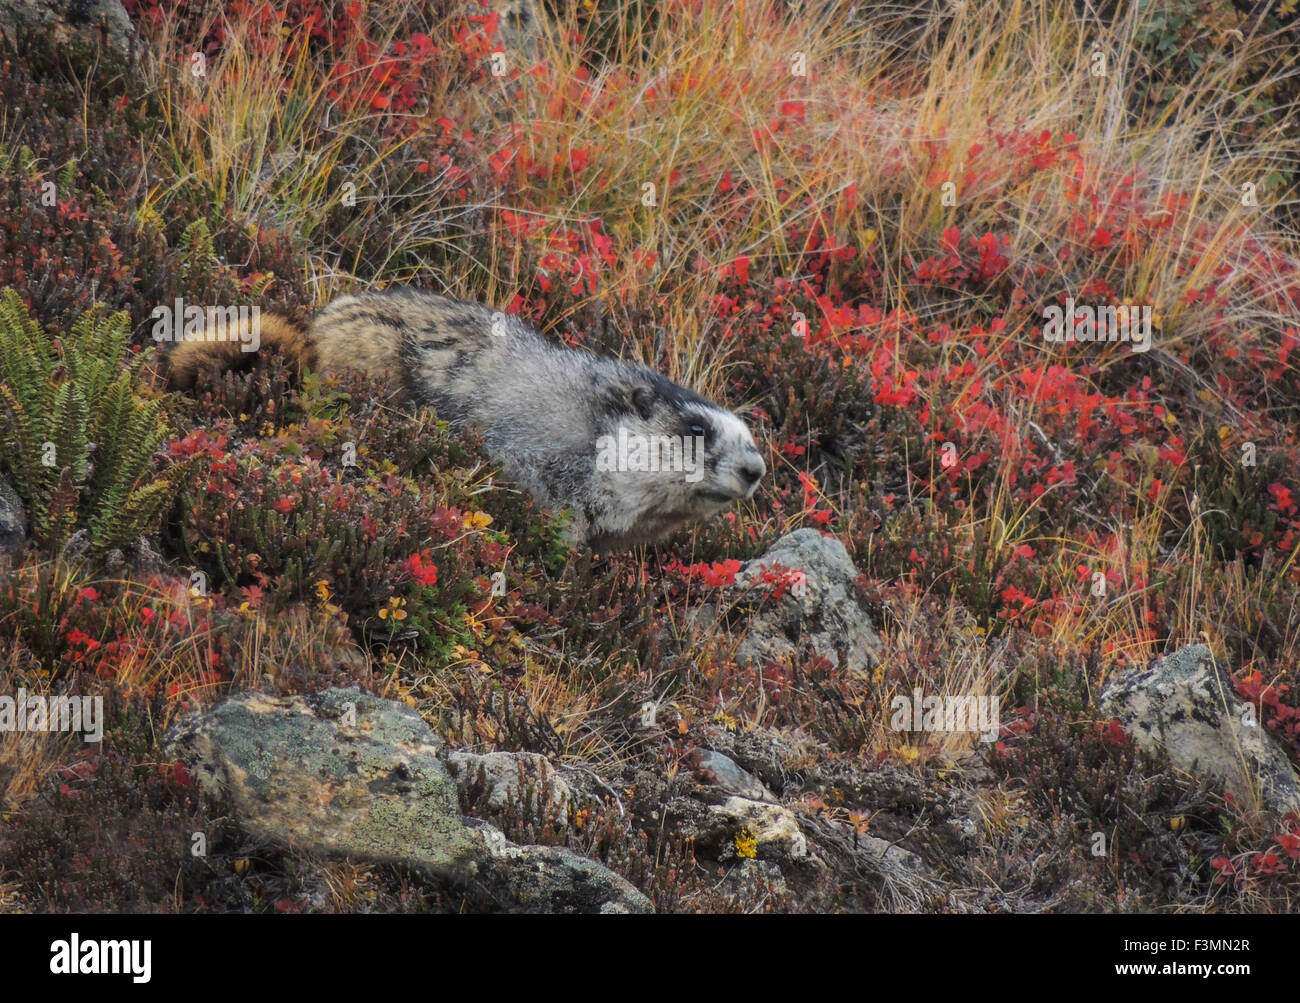 A Hoary Marmot (Marmota caligata) forages the fall tundra  on a rocky slope near its burrow at or above tree line - Stock Image